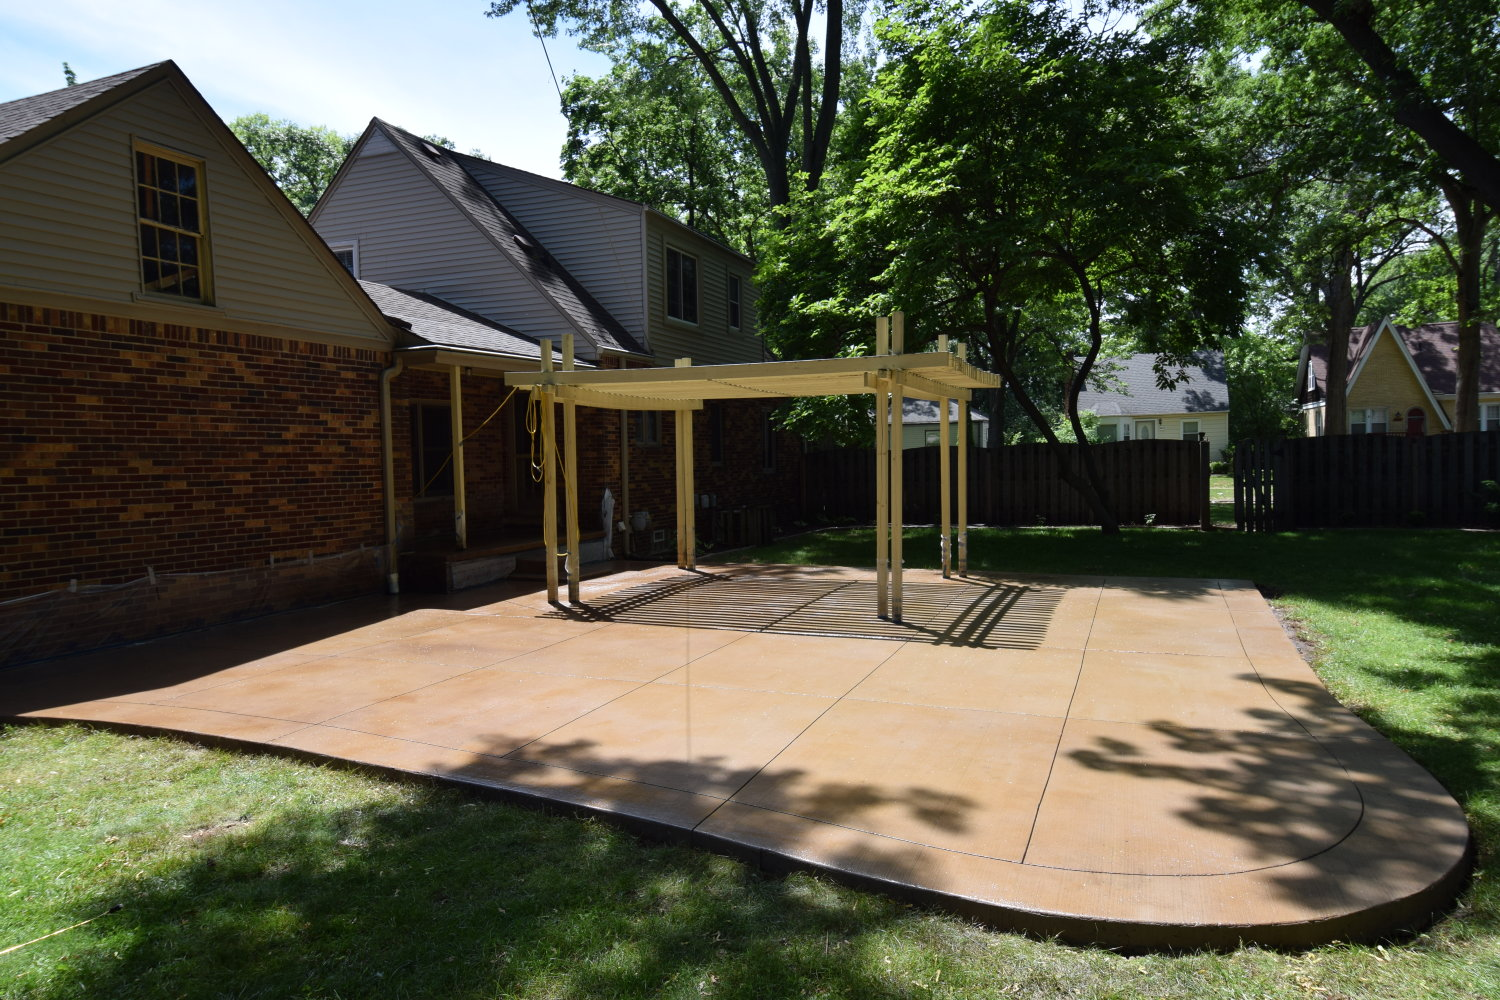 Acid-Stained Cement Overlay of Concrete Patio